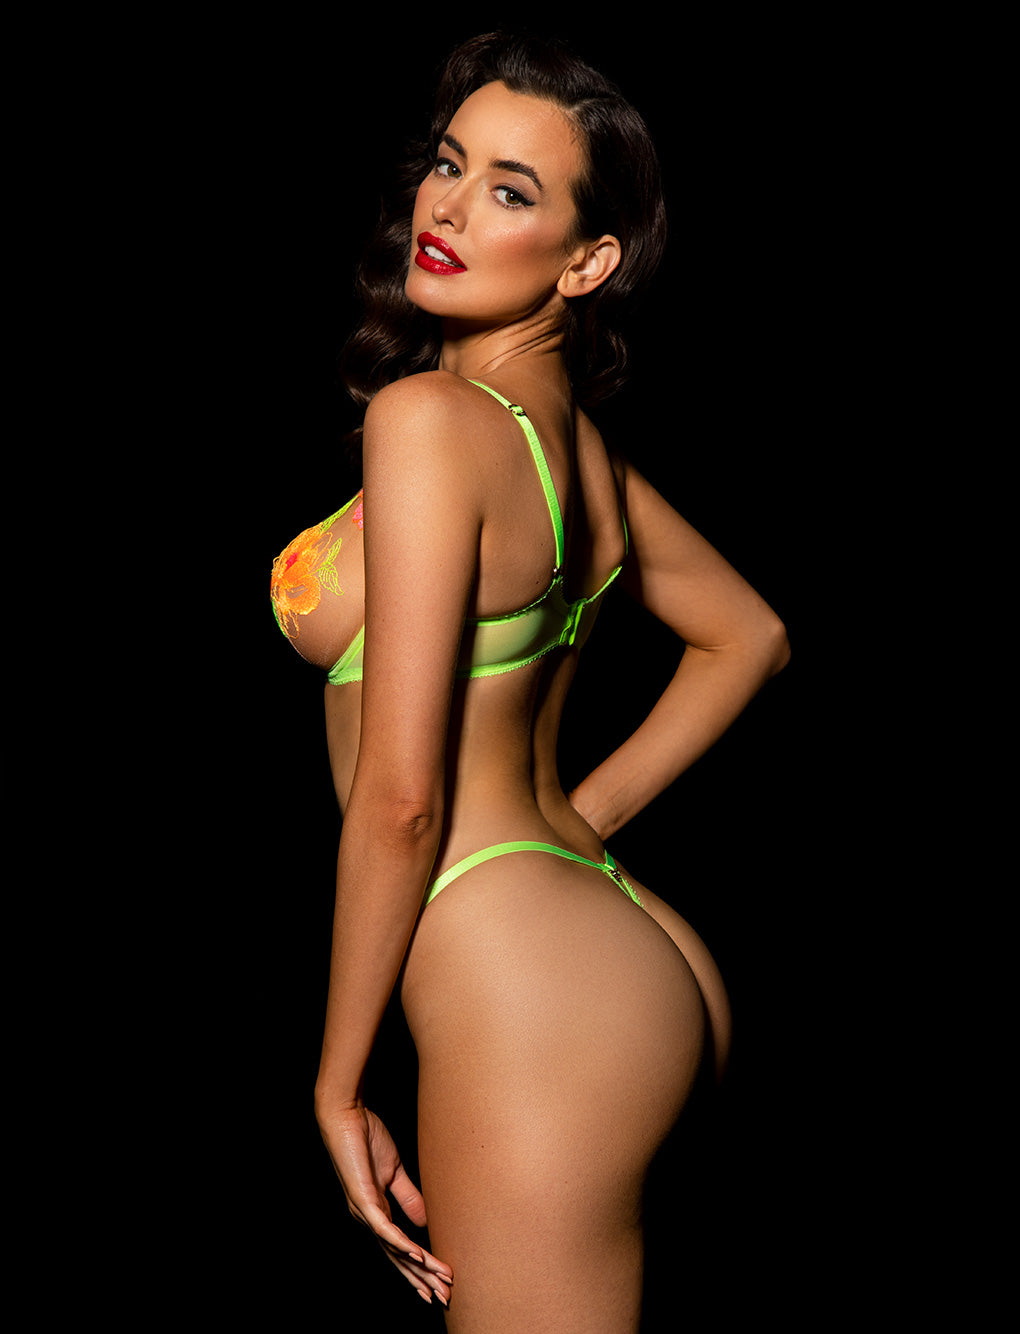 Christine Neon Lingerie Set | Shop Honey Birdette